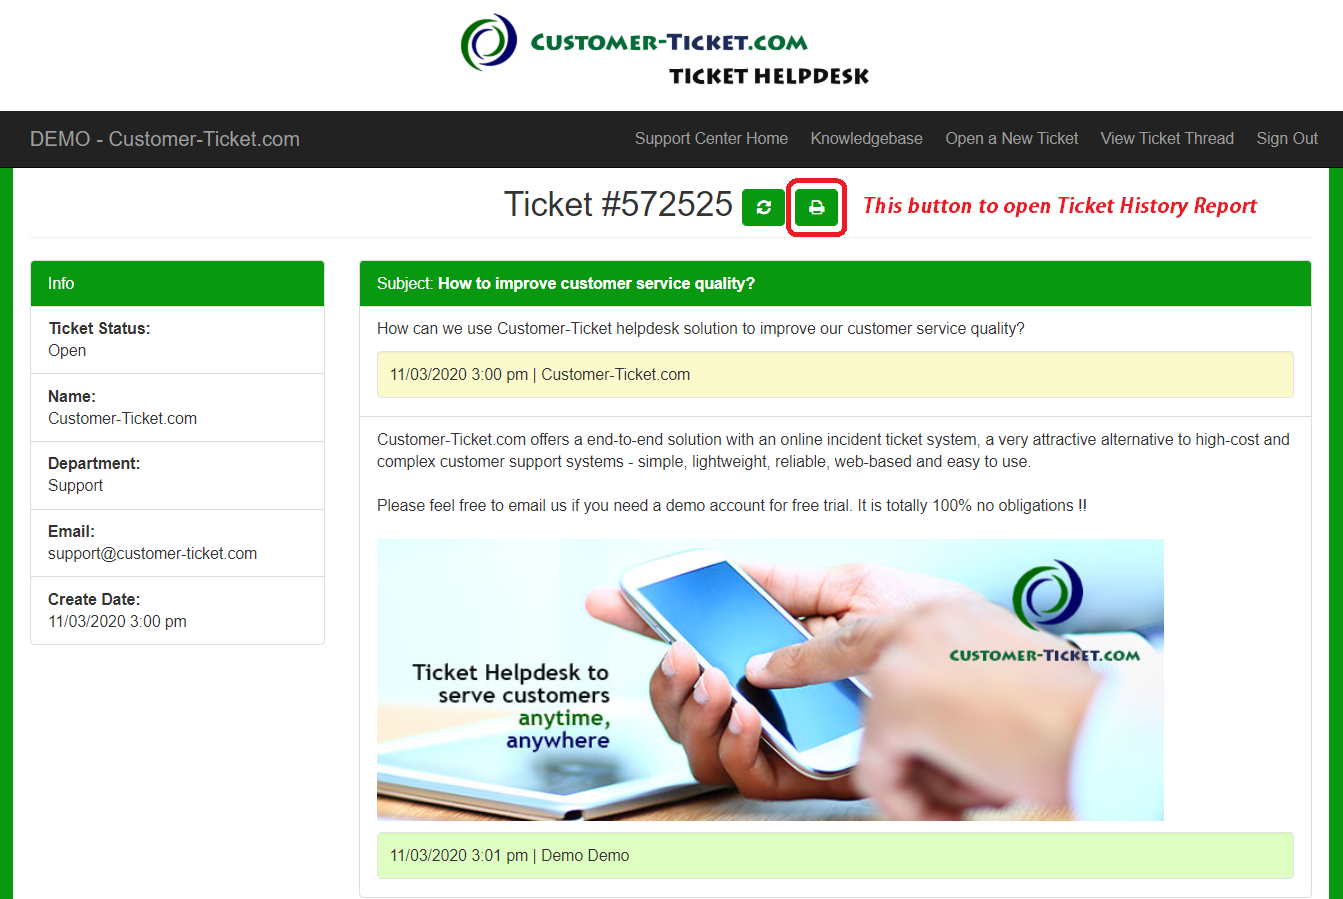 helpdesk system where user check ticket status, remarks highlighted